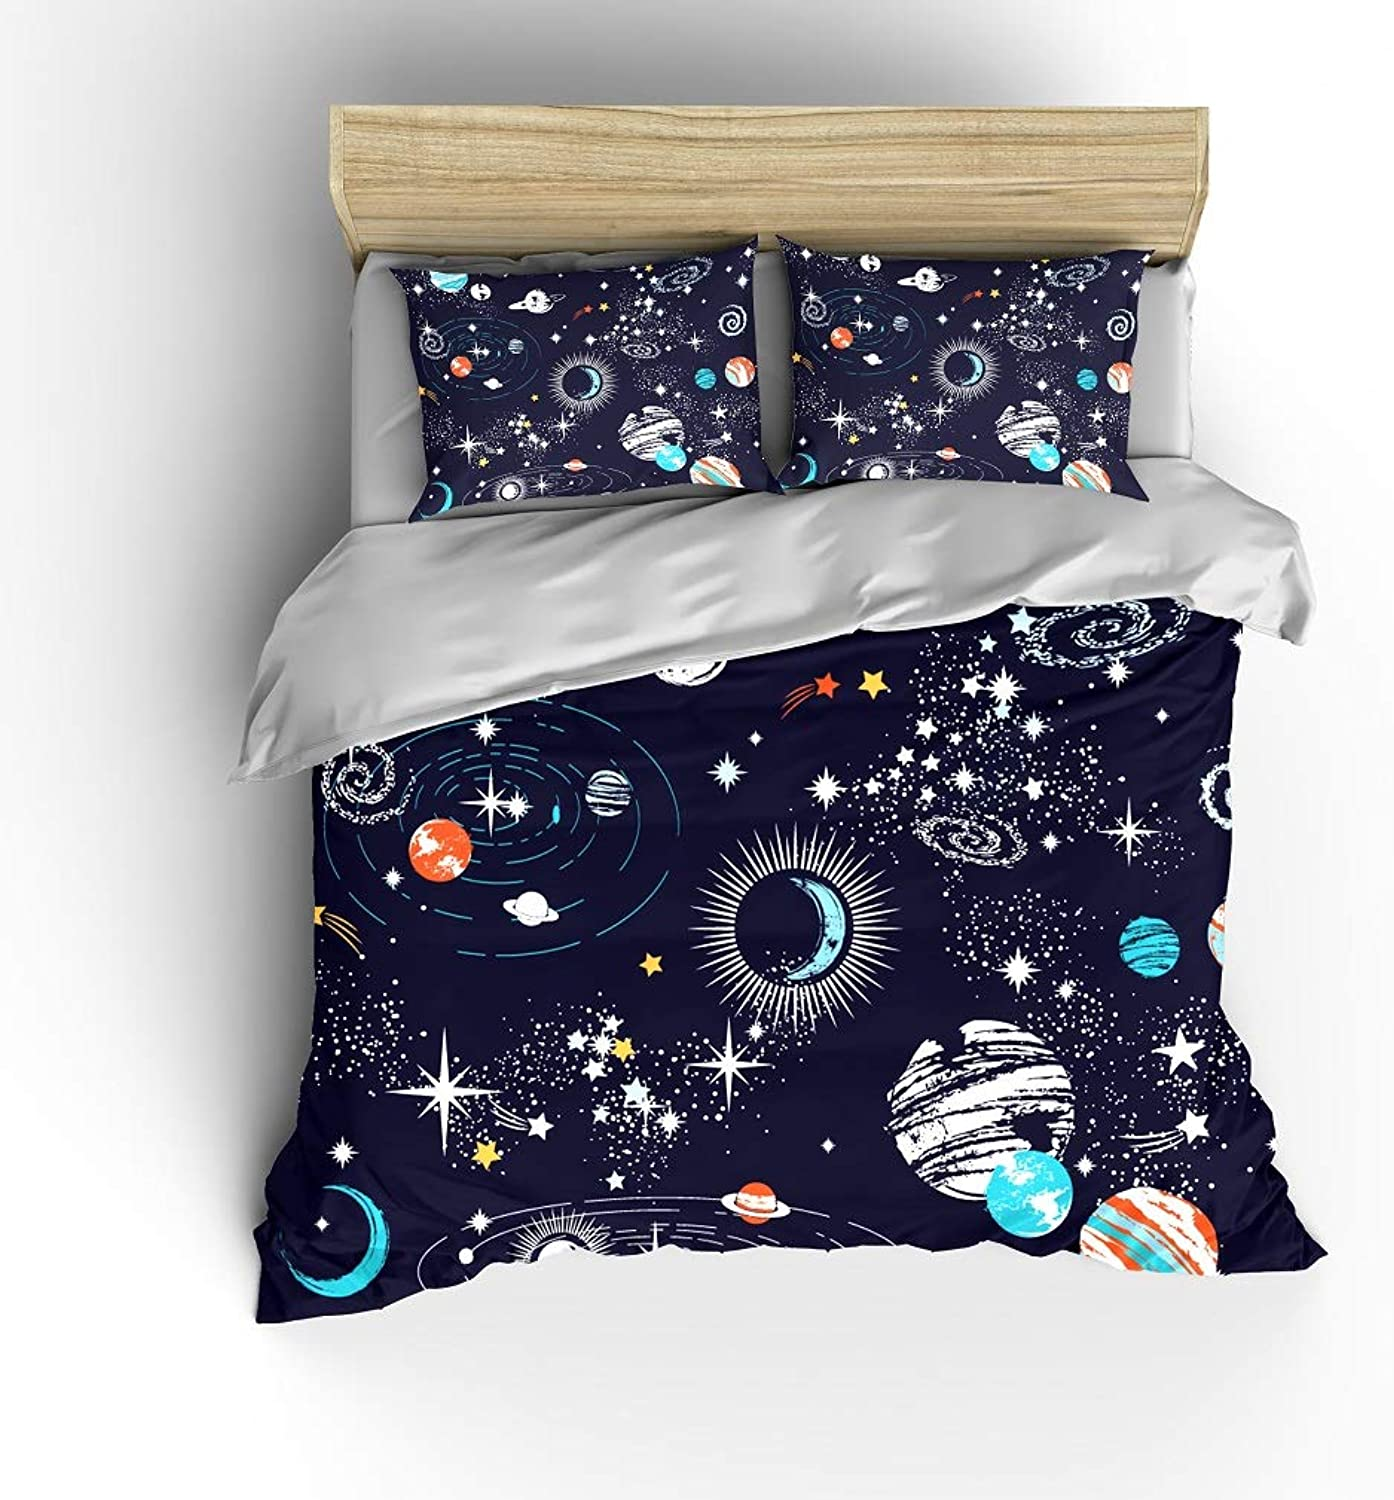 SHOMPE Galaxy Space Bedding Sets Kids Full Size,Navy bluee Universe Adventure Stars Duvet Cover Sets with 2 Pillowcases for Boys Girls Teens Bedroom,NO Comforter